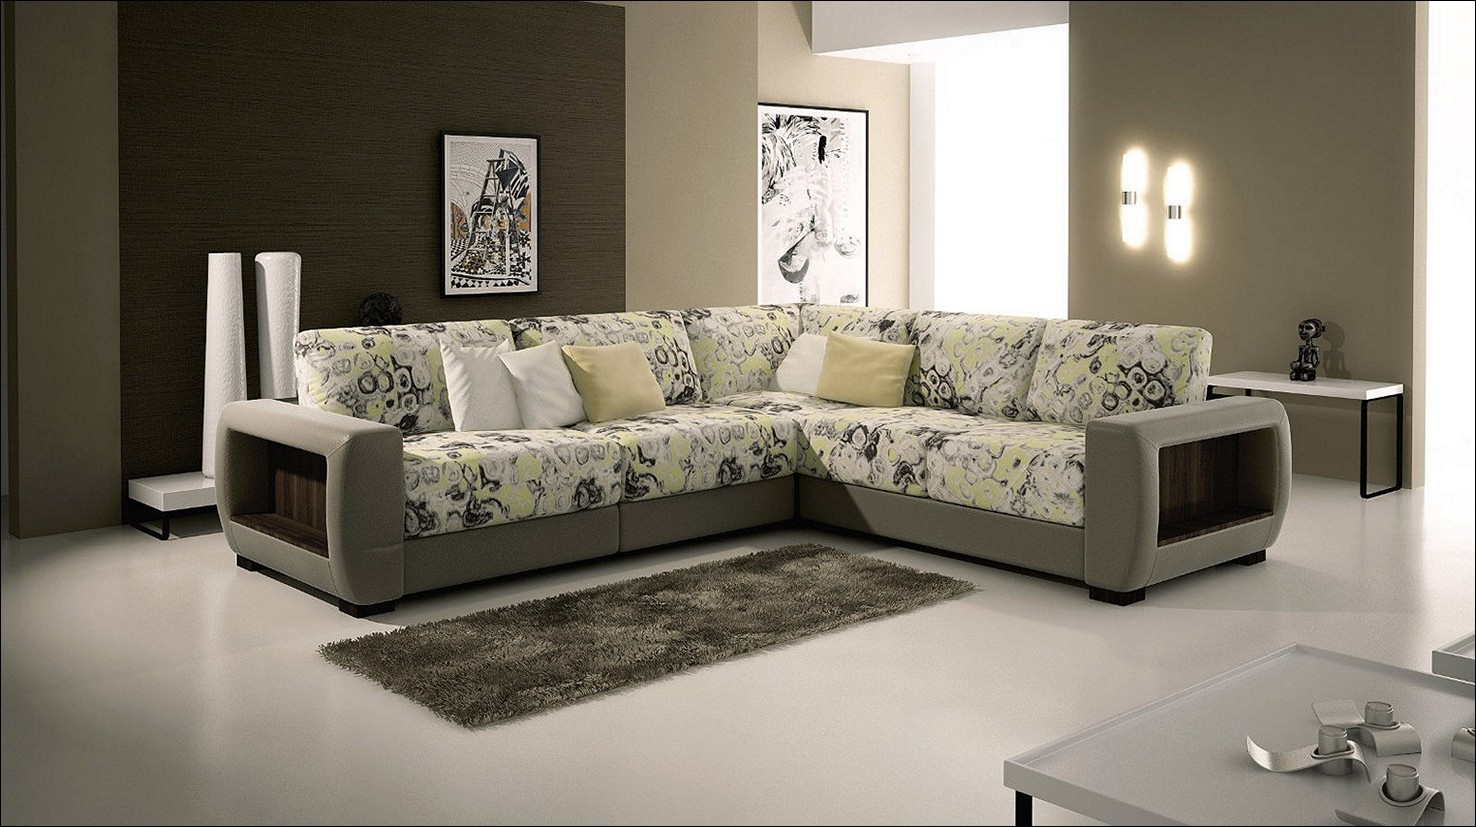 pictures of living room wall decor wallpapers for living room design ideas in uk 26523